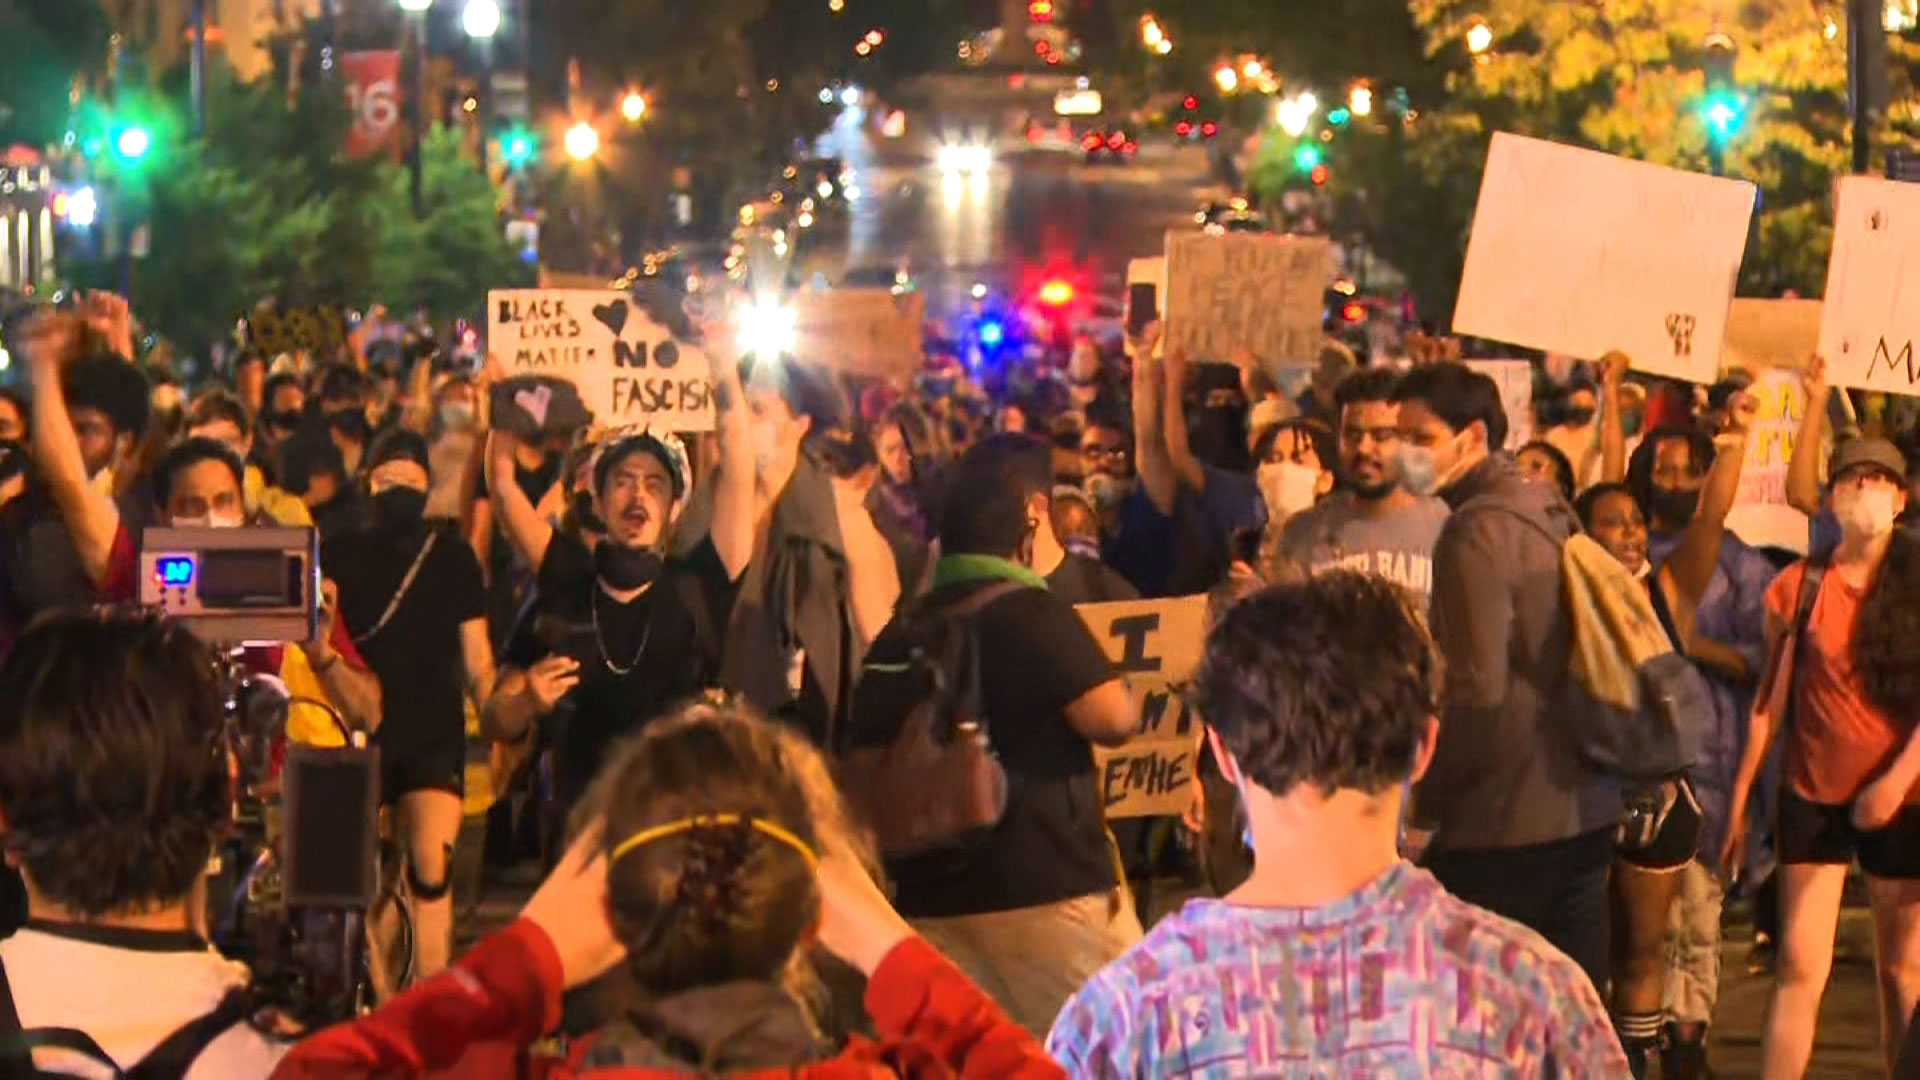 Protesters march in Washington on Friday night.